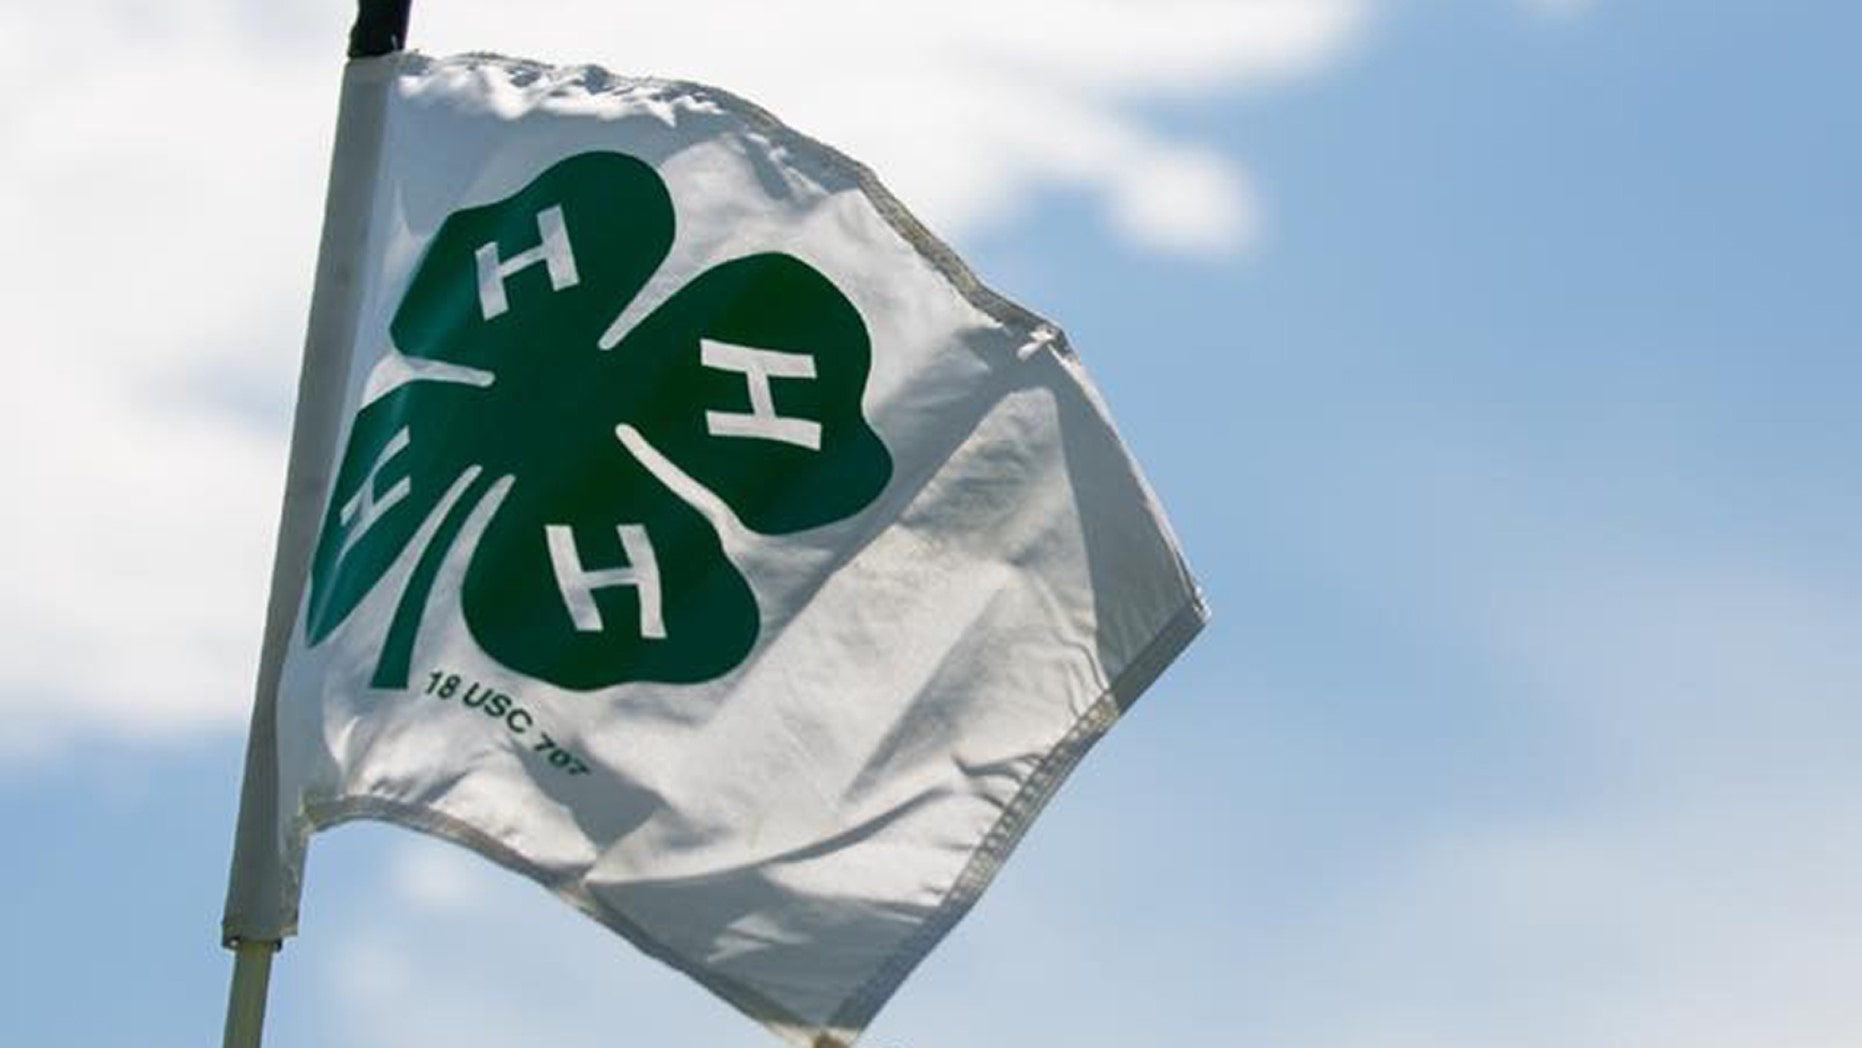 John-Paul Chaisson-Cárdenas, a 4-H youth development program director in Iowa, was terminated Thursday following a controversial proposed LGBTQ inclusion policy, a report said.